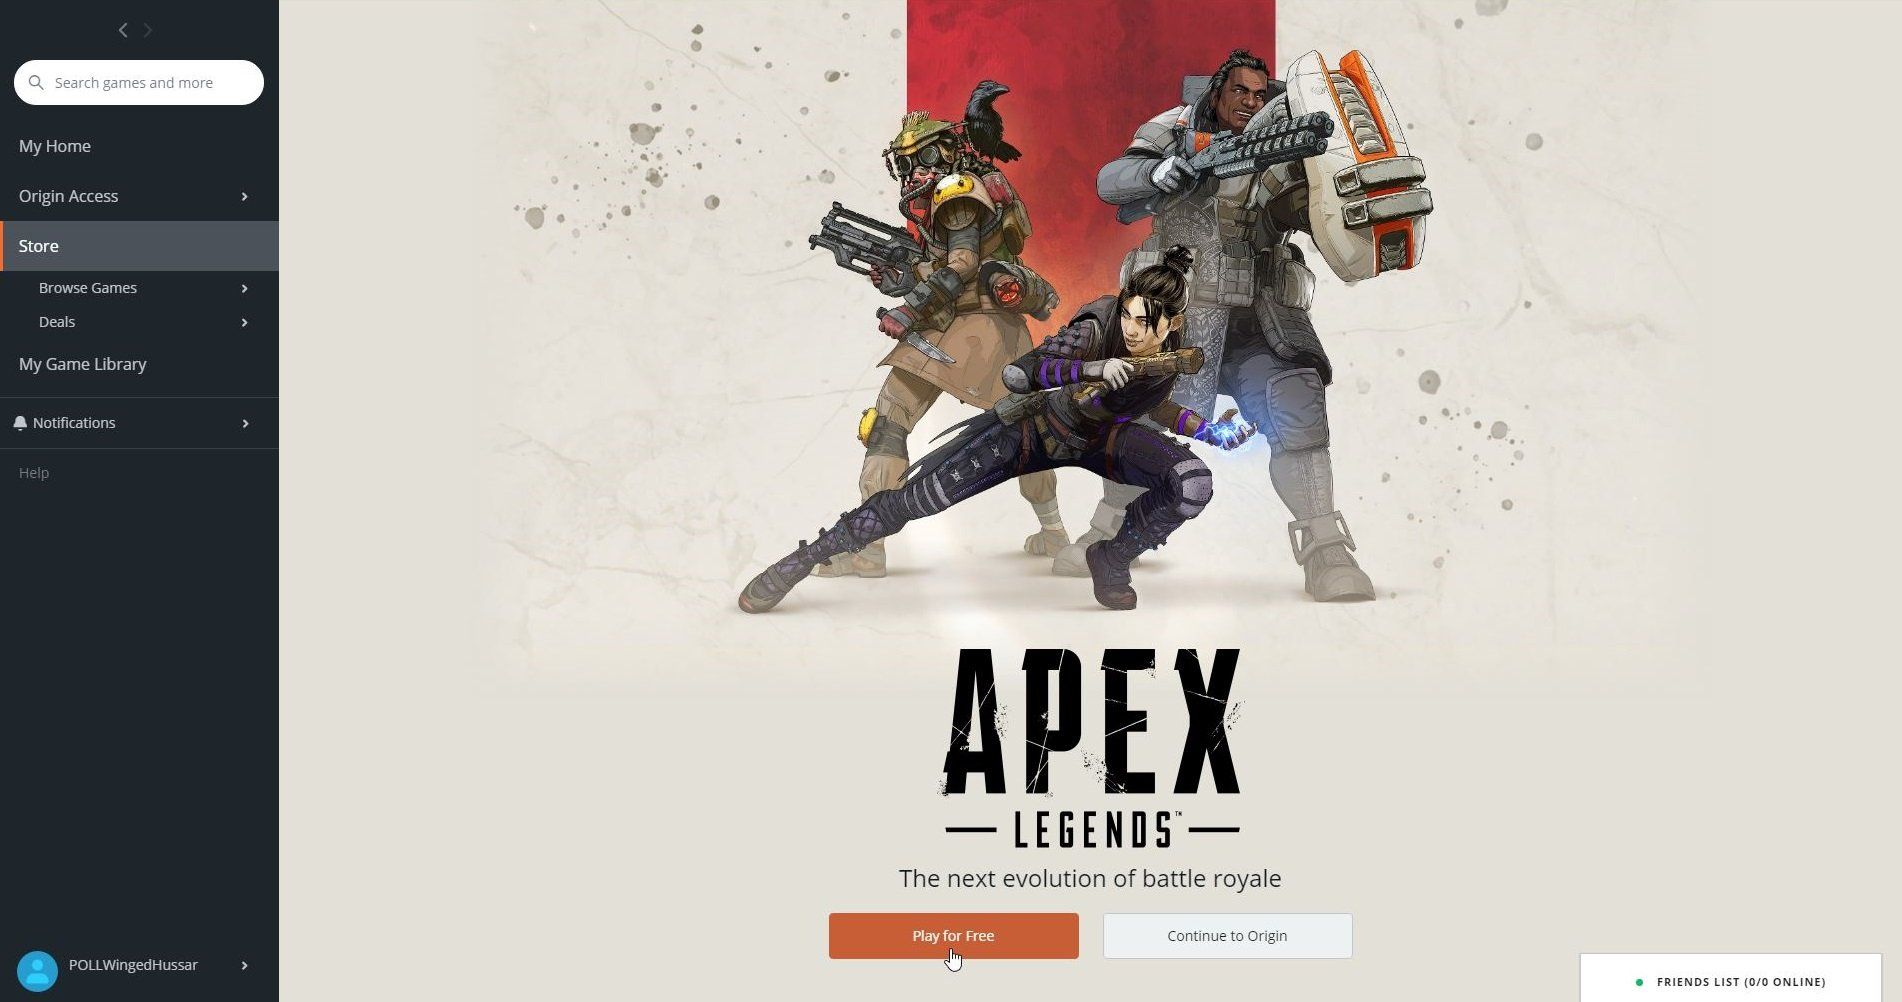 Apex Legends can be found on the Origin Store. To download and add it to your Game Library, click the